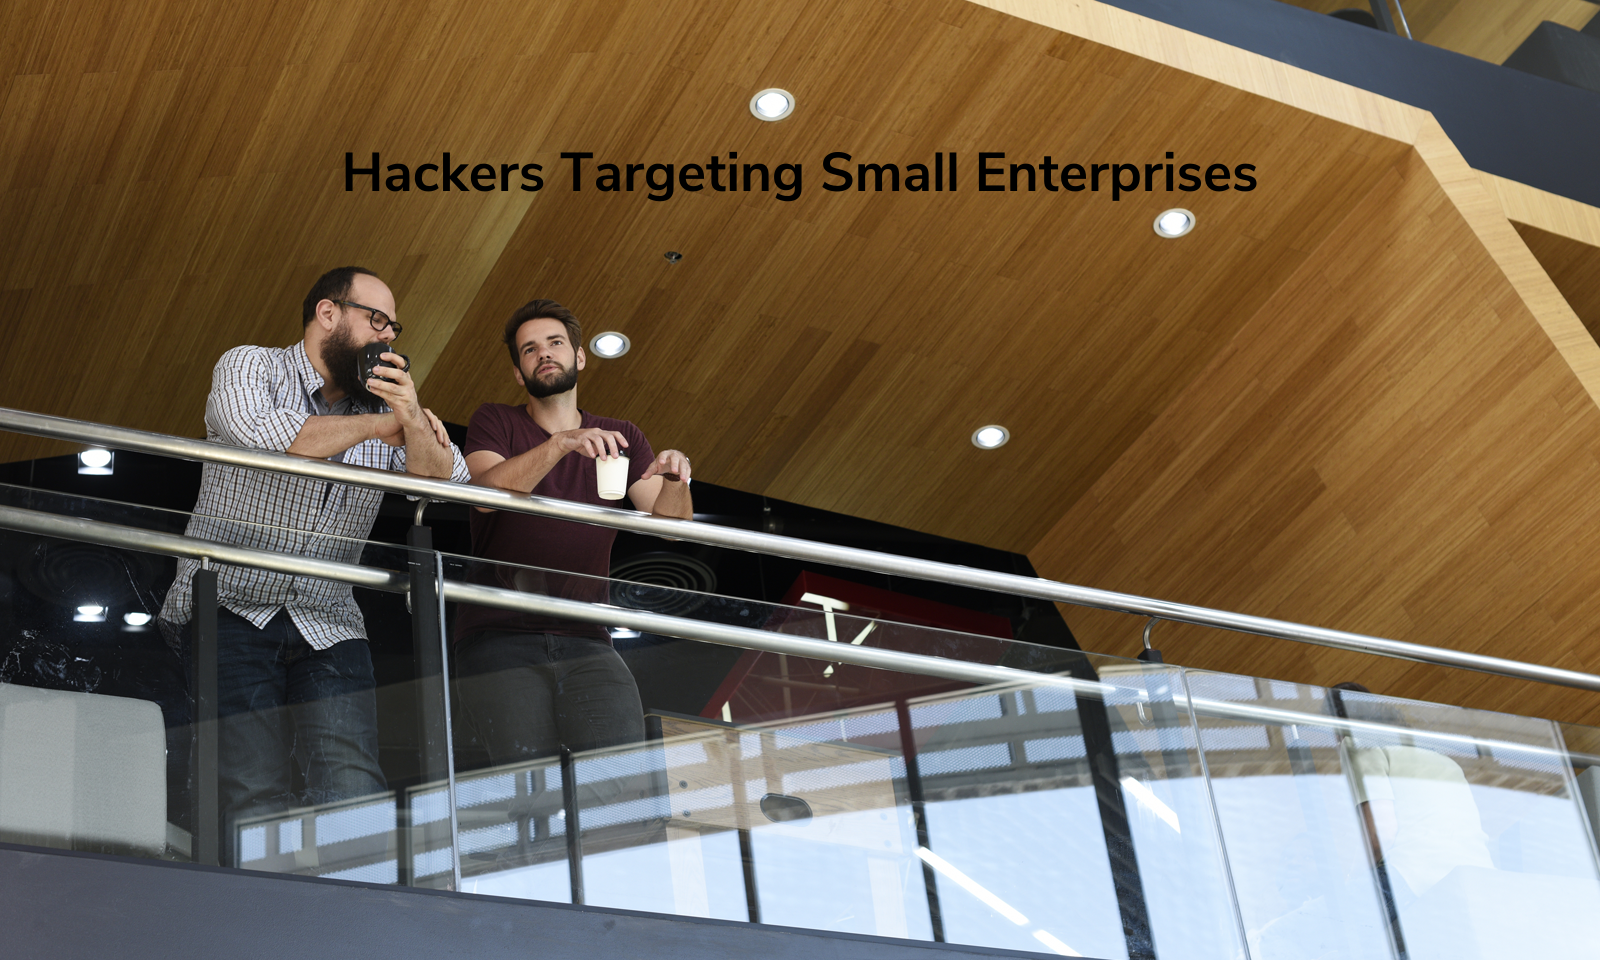 Hackers Targeting Small Enterprises